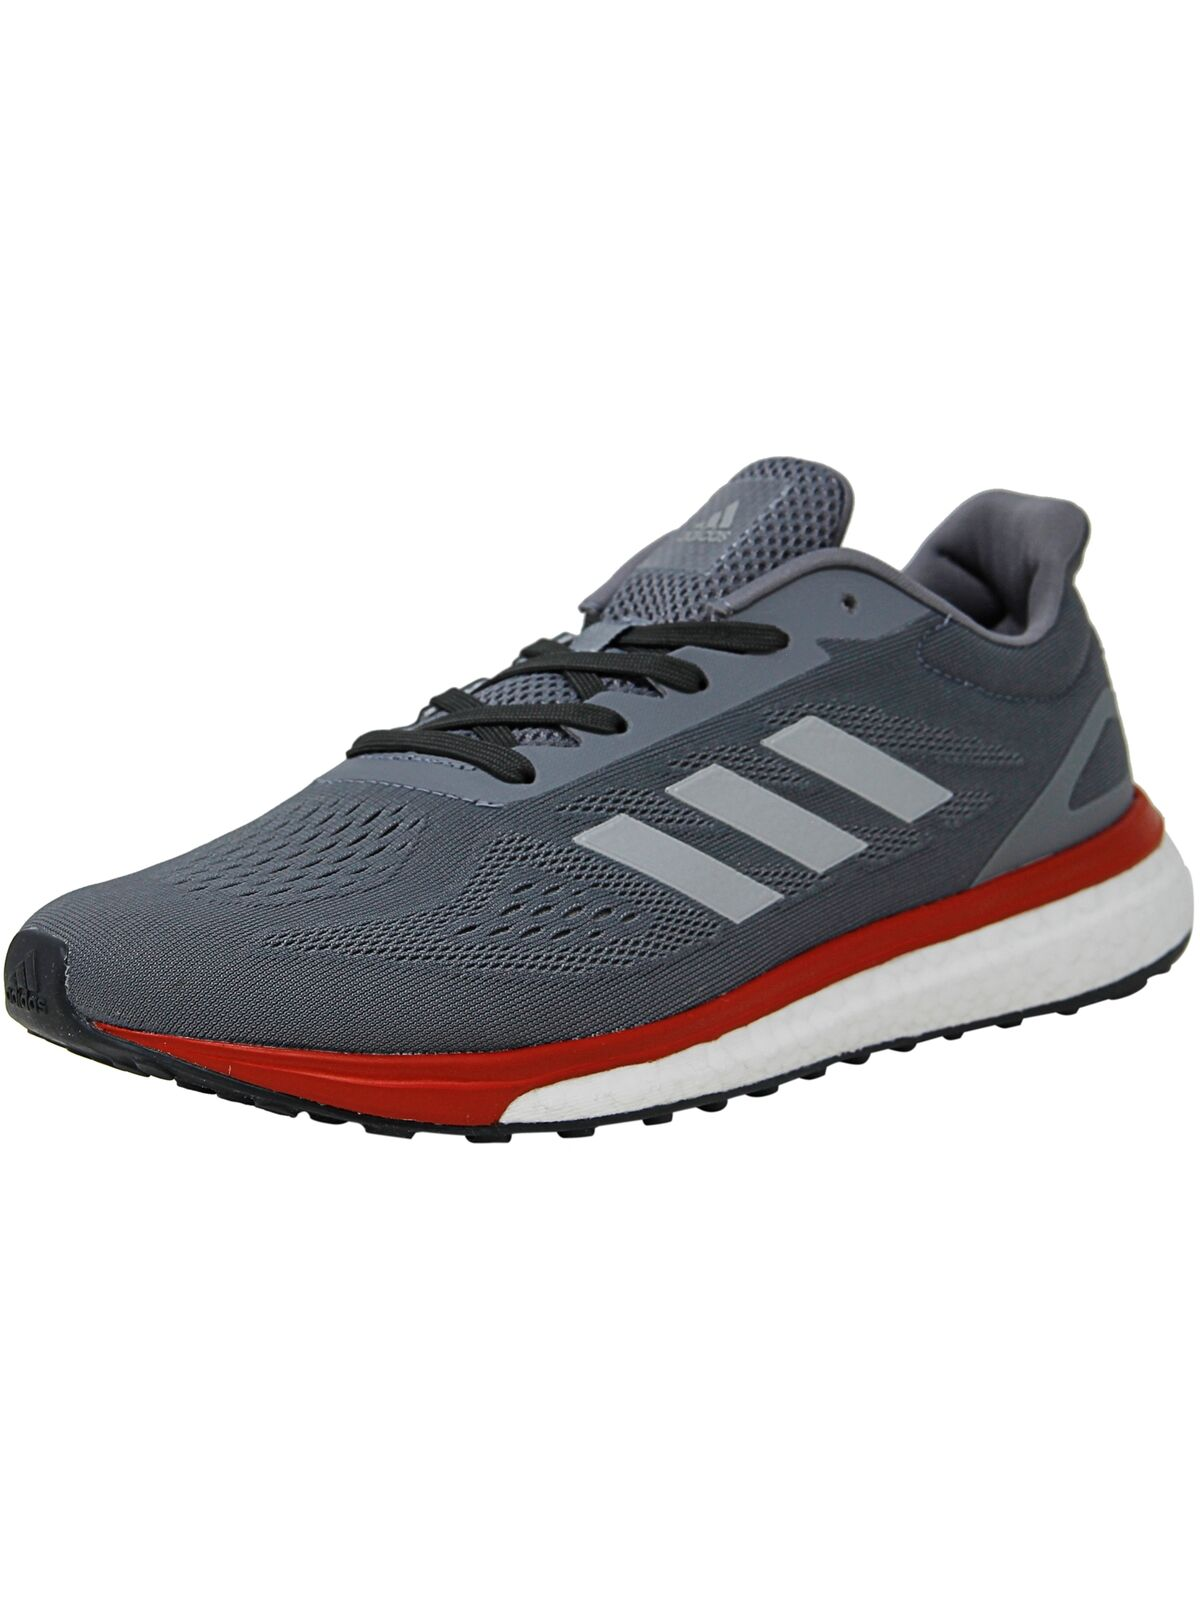 Adidas Men's Response Lt Ankle-High Fabric Running shoes